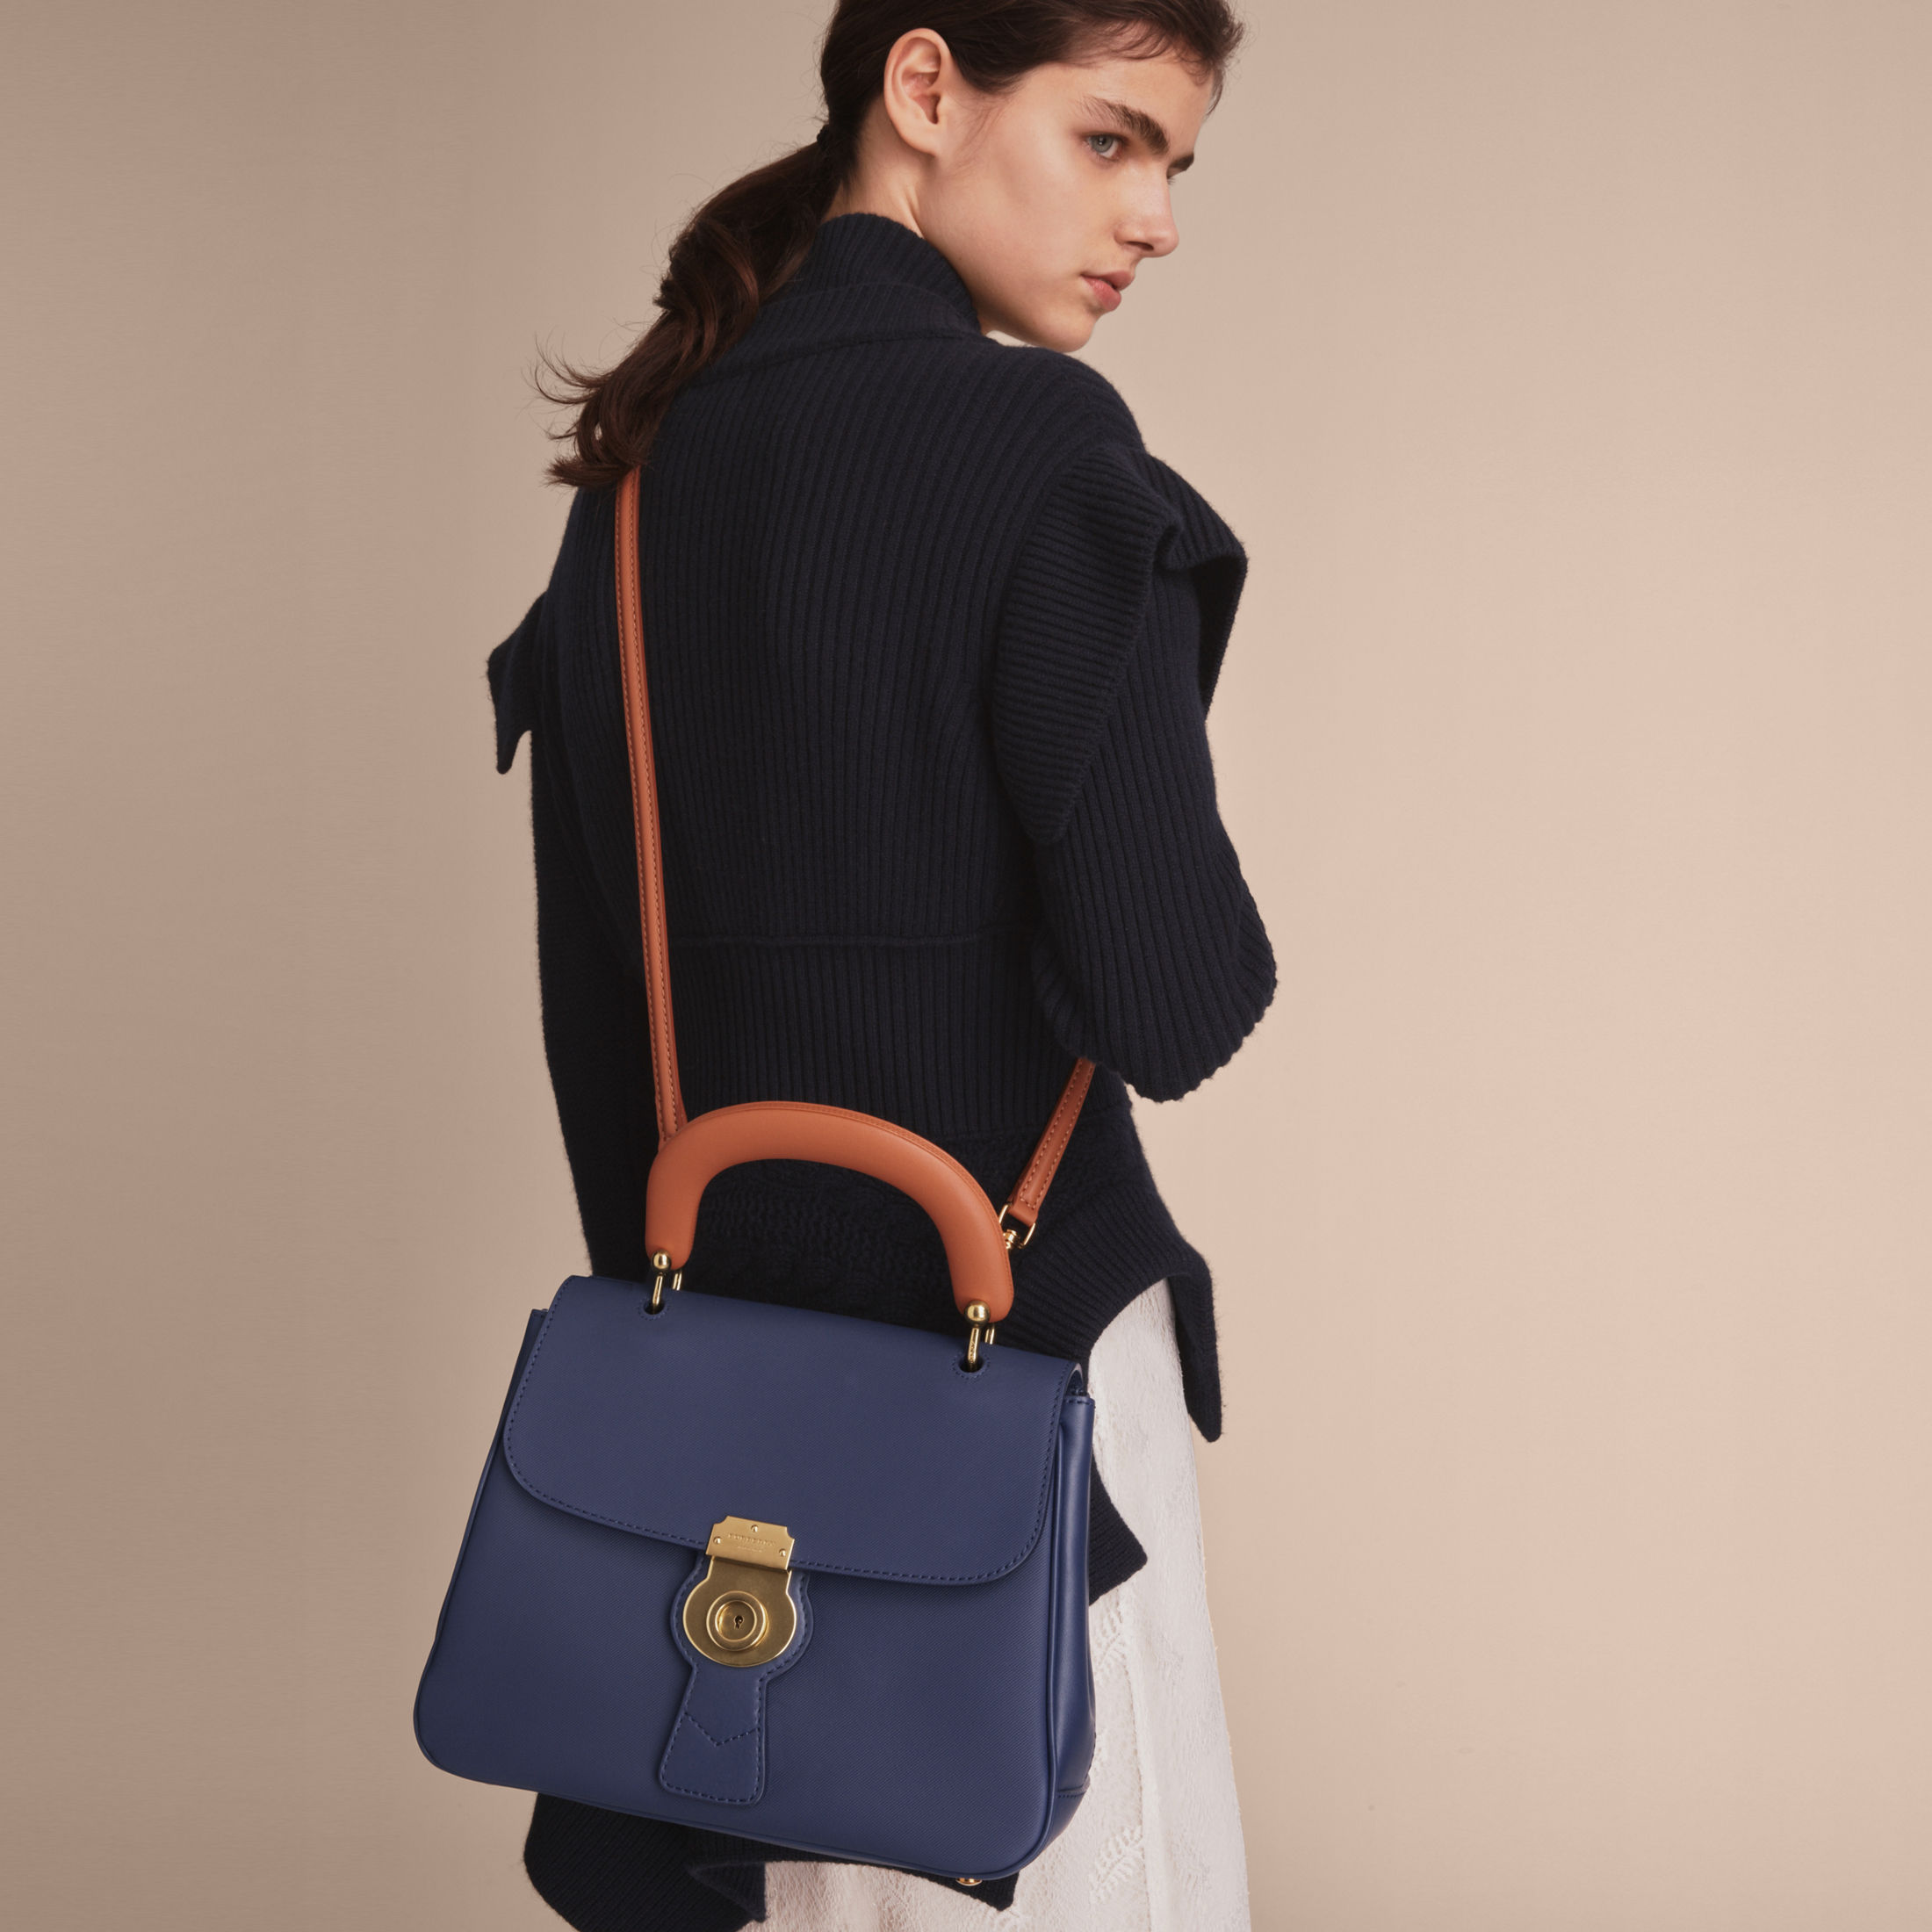 Tory Burch - Diamond Stitched Leather Tote